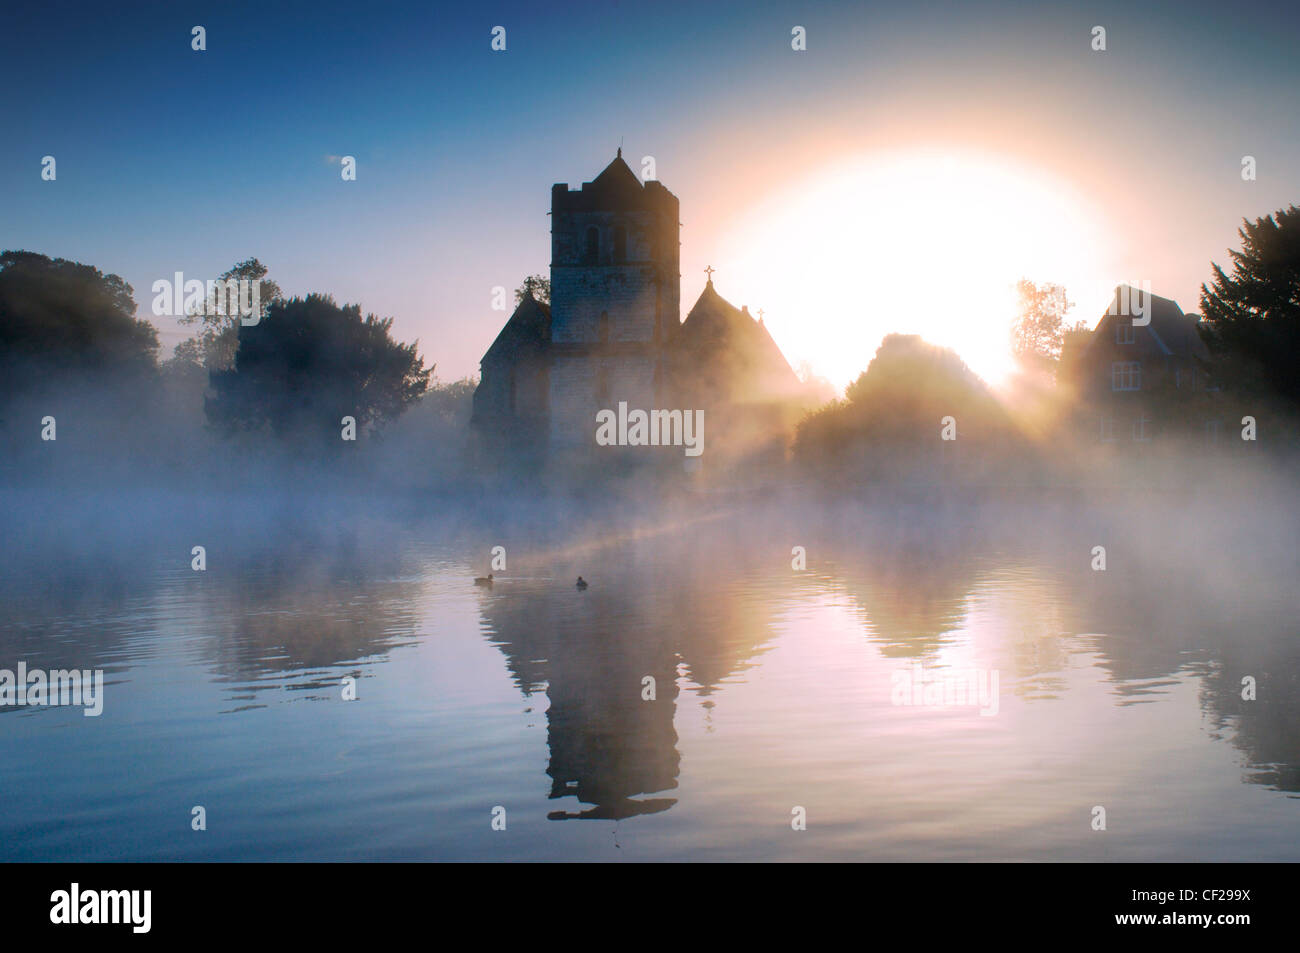 Bisham Church in the early morning mist with ducks. Bisham is home to one of the Sport England's National Sports - Stock Image